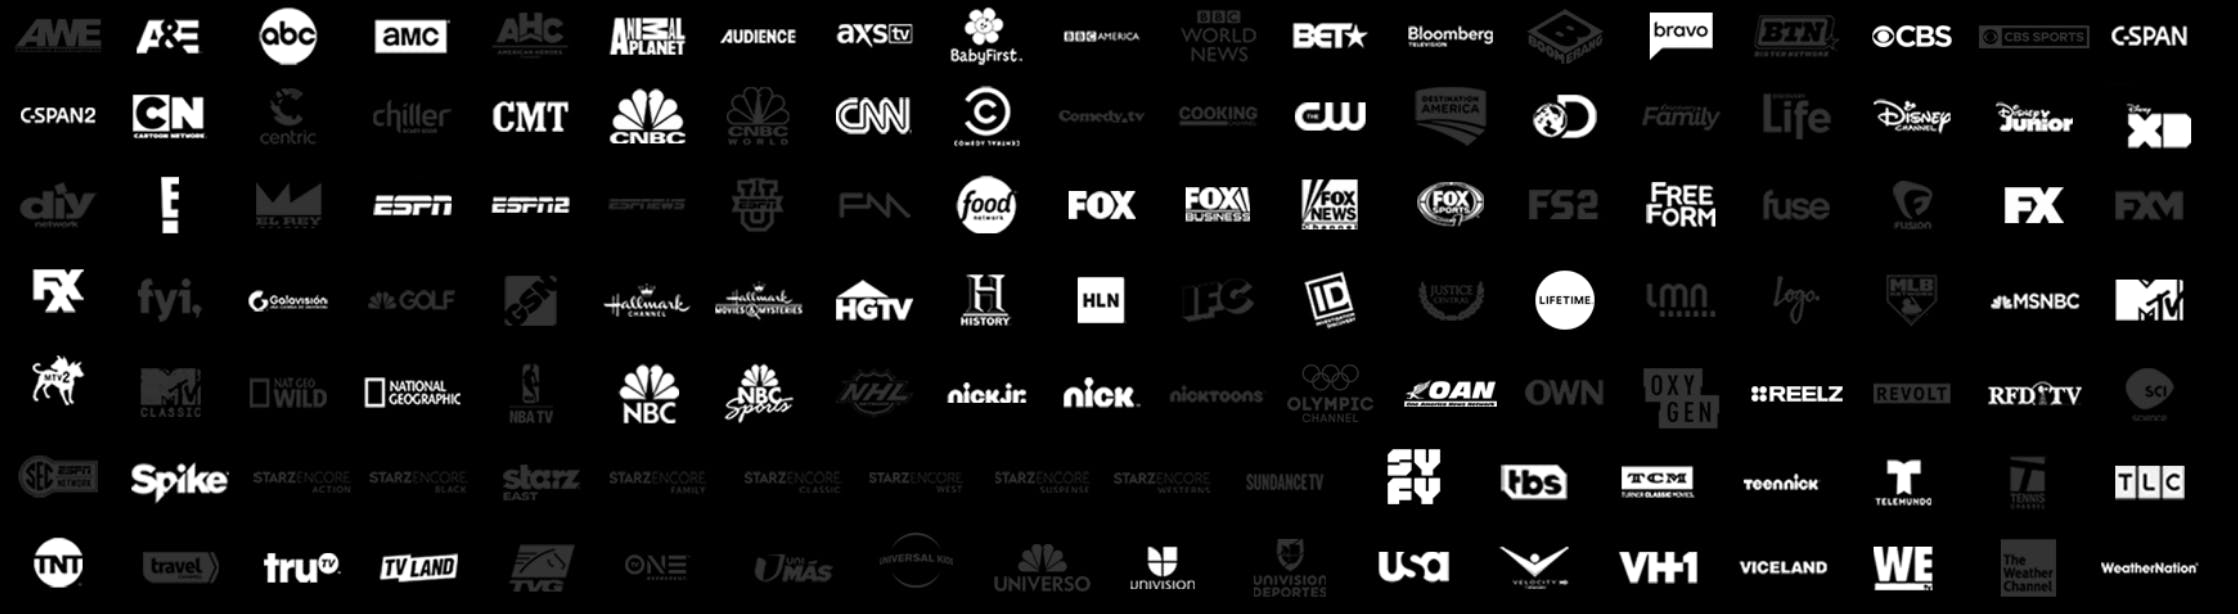 directv now channels for the live a little package